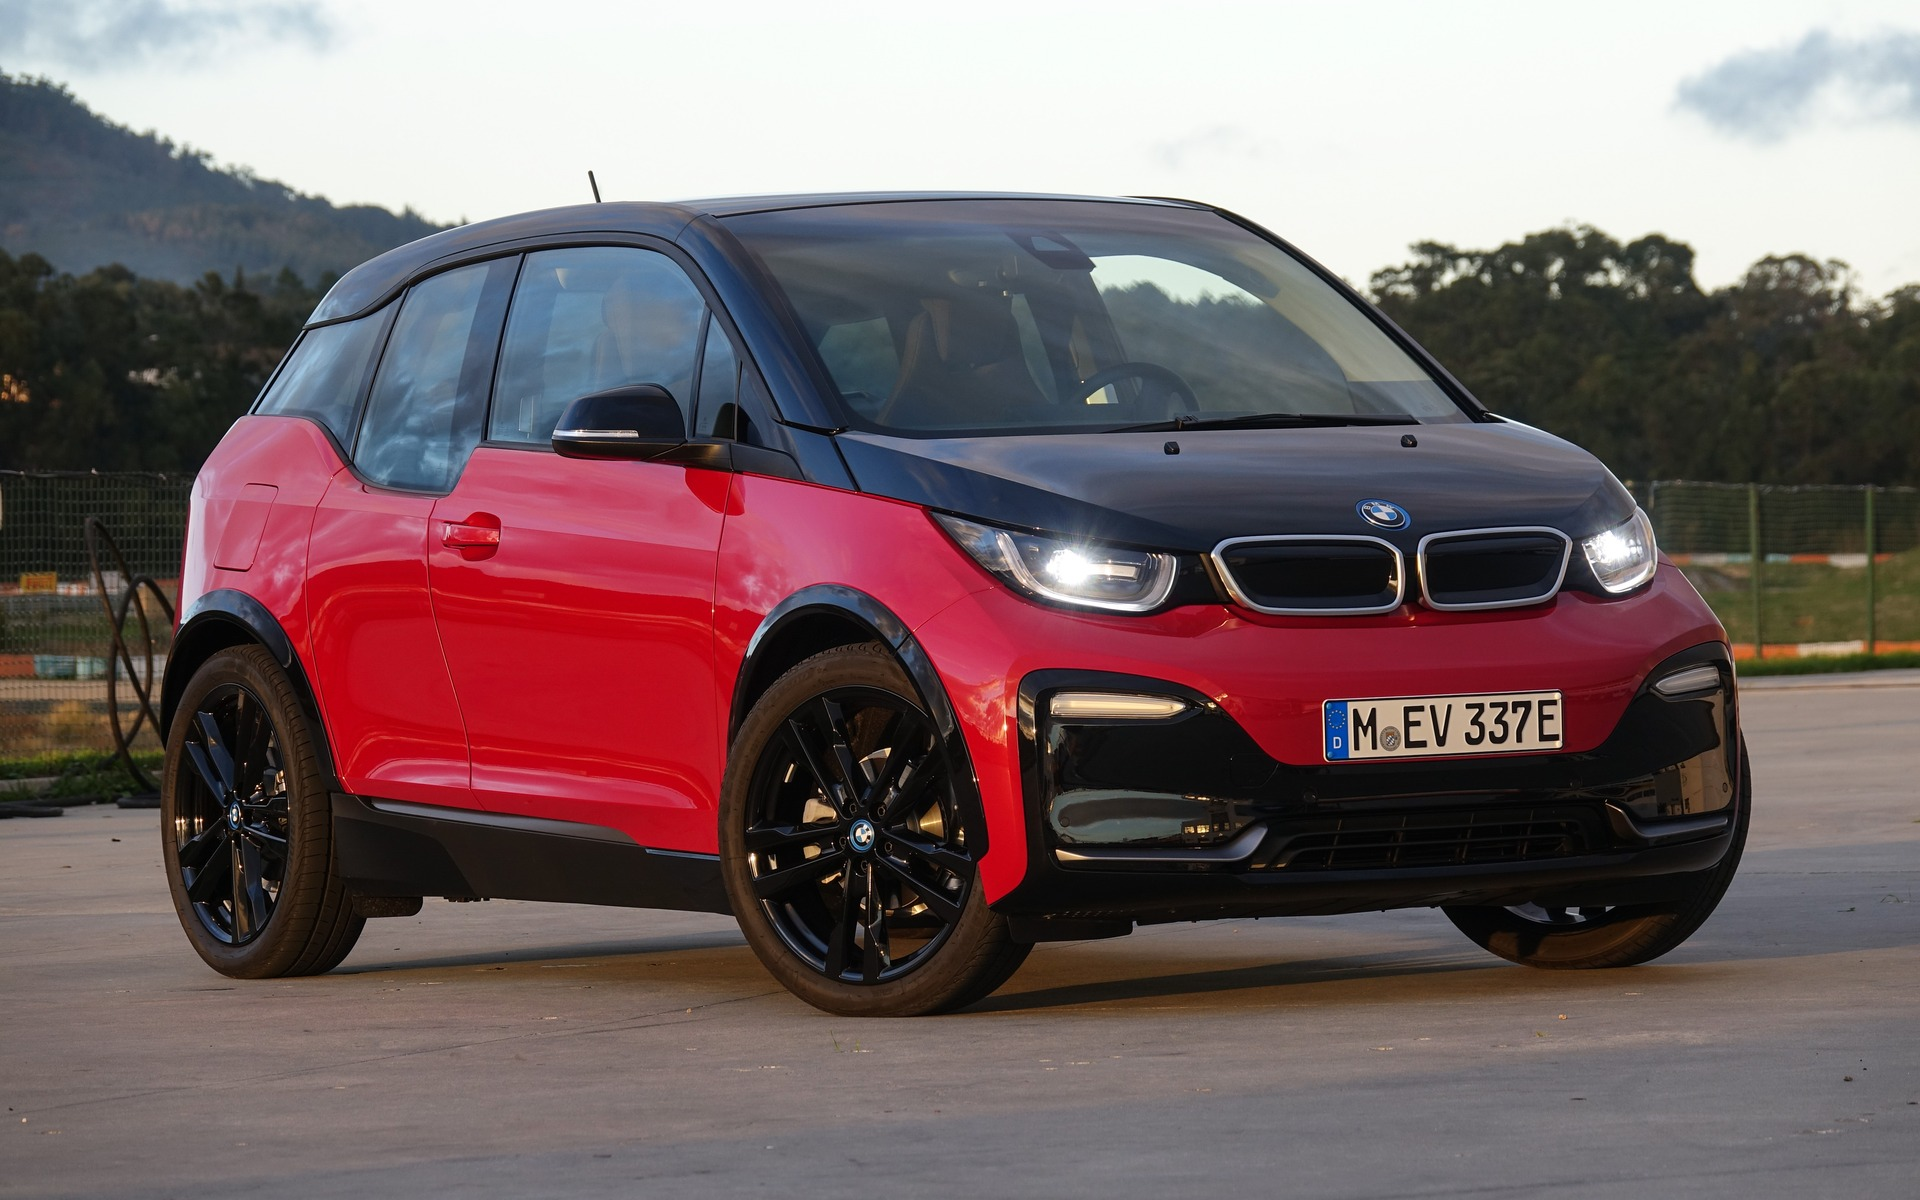 bmw i3s 2018 la chouchou des branch s s am liore guide auto. Black Bedroom Furniture Sets. Home Design Ideas